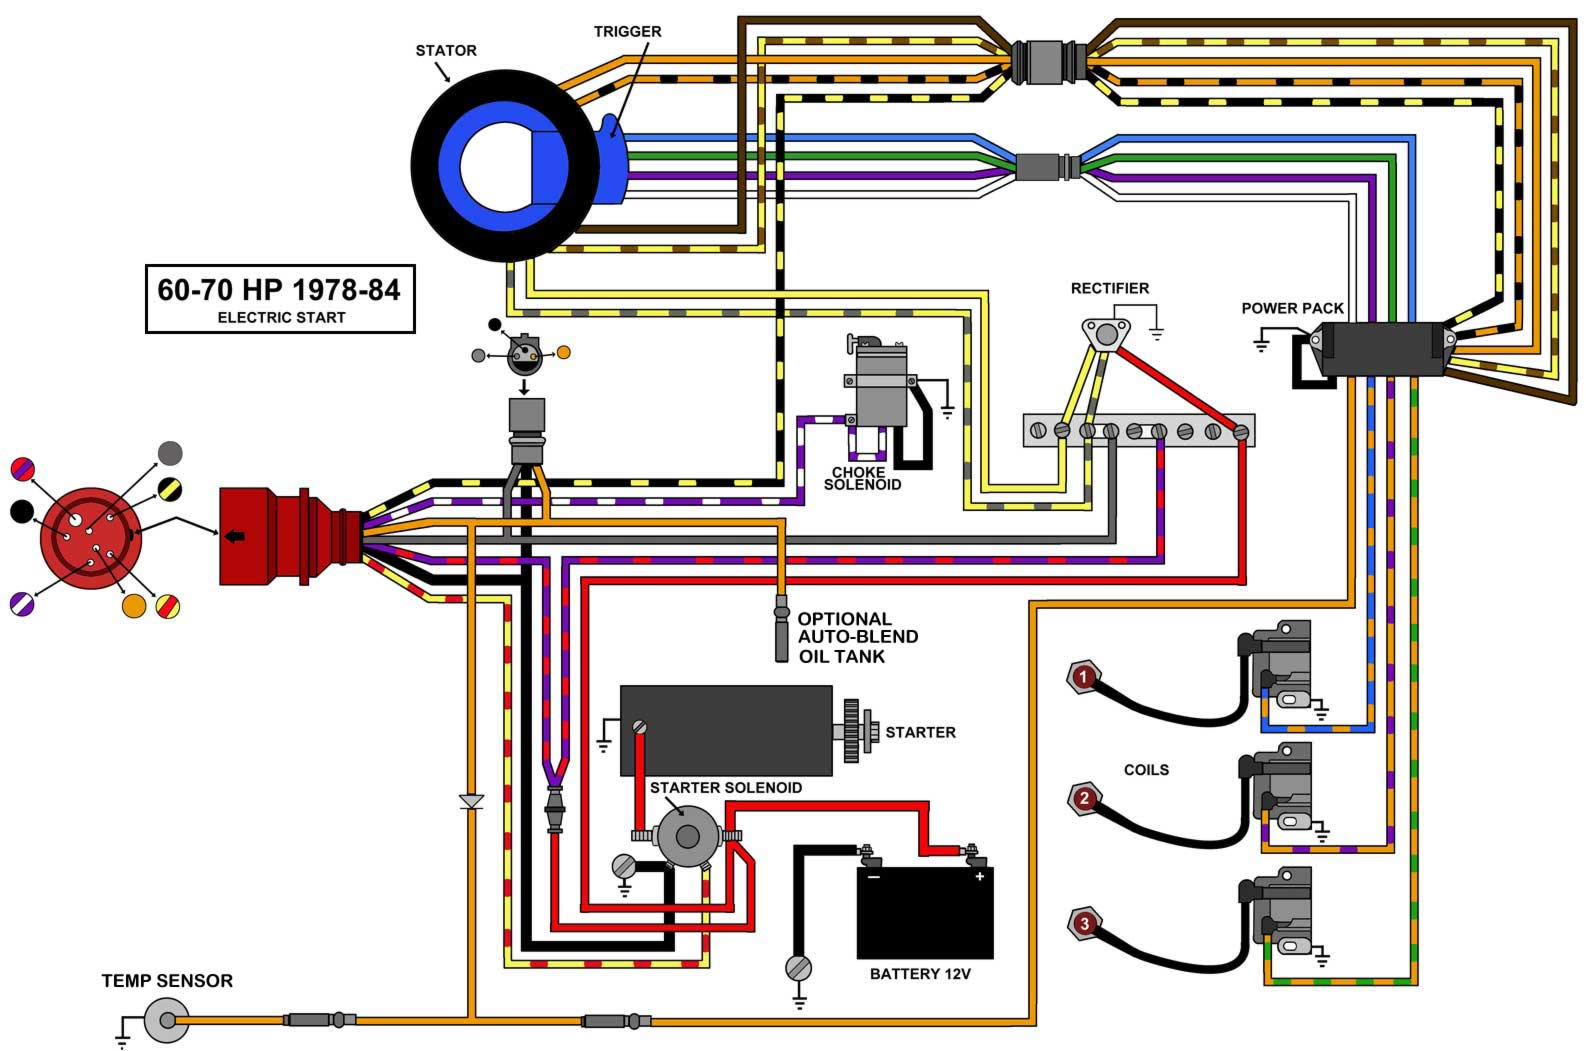 Cyl El on 76 Evinrude Wiring Diagram